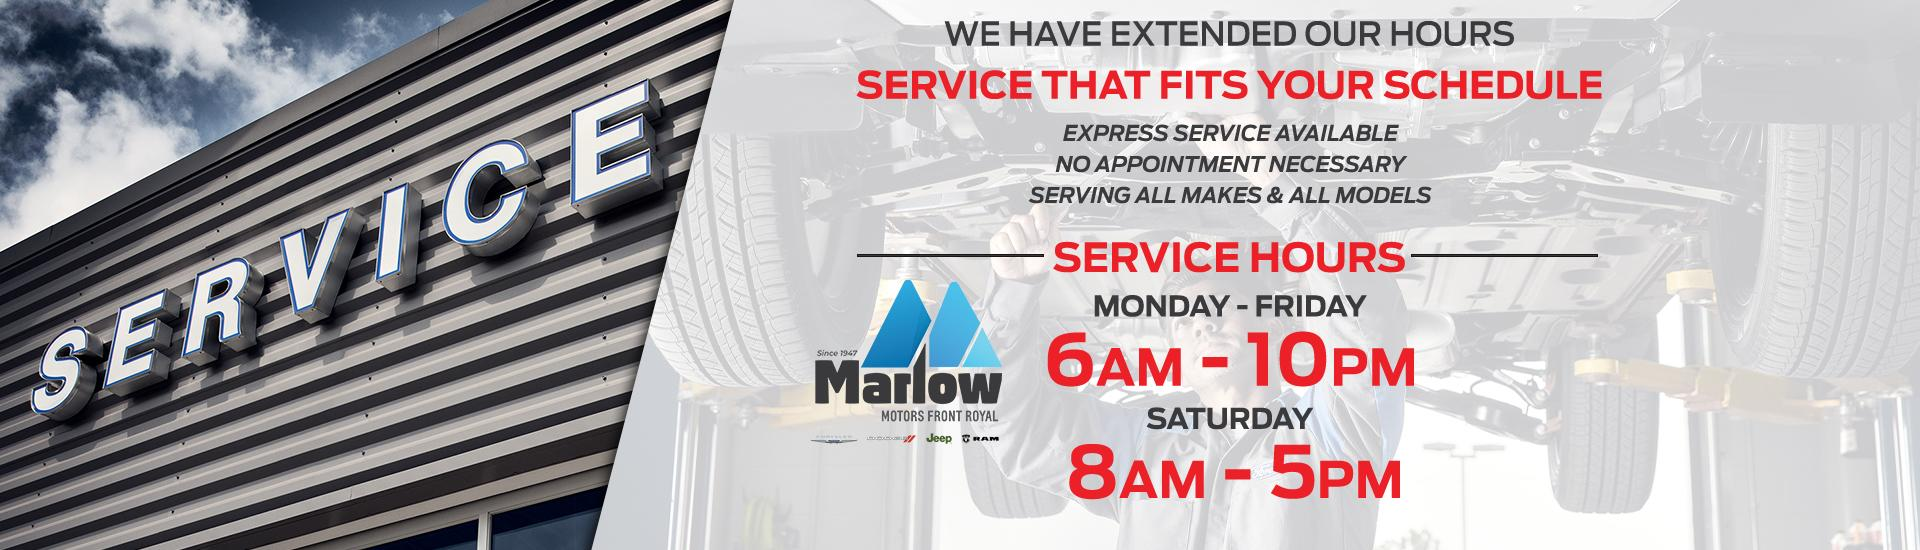 Service That Fits your Schedule